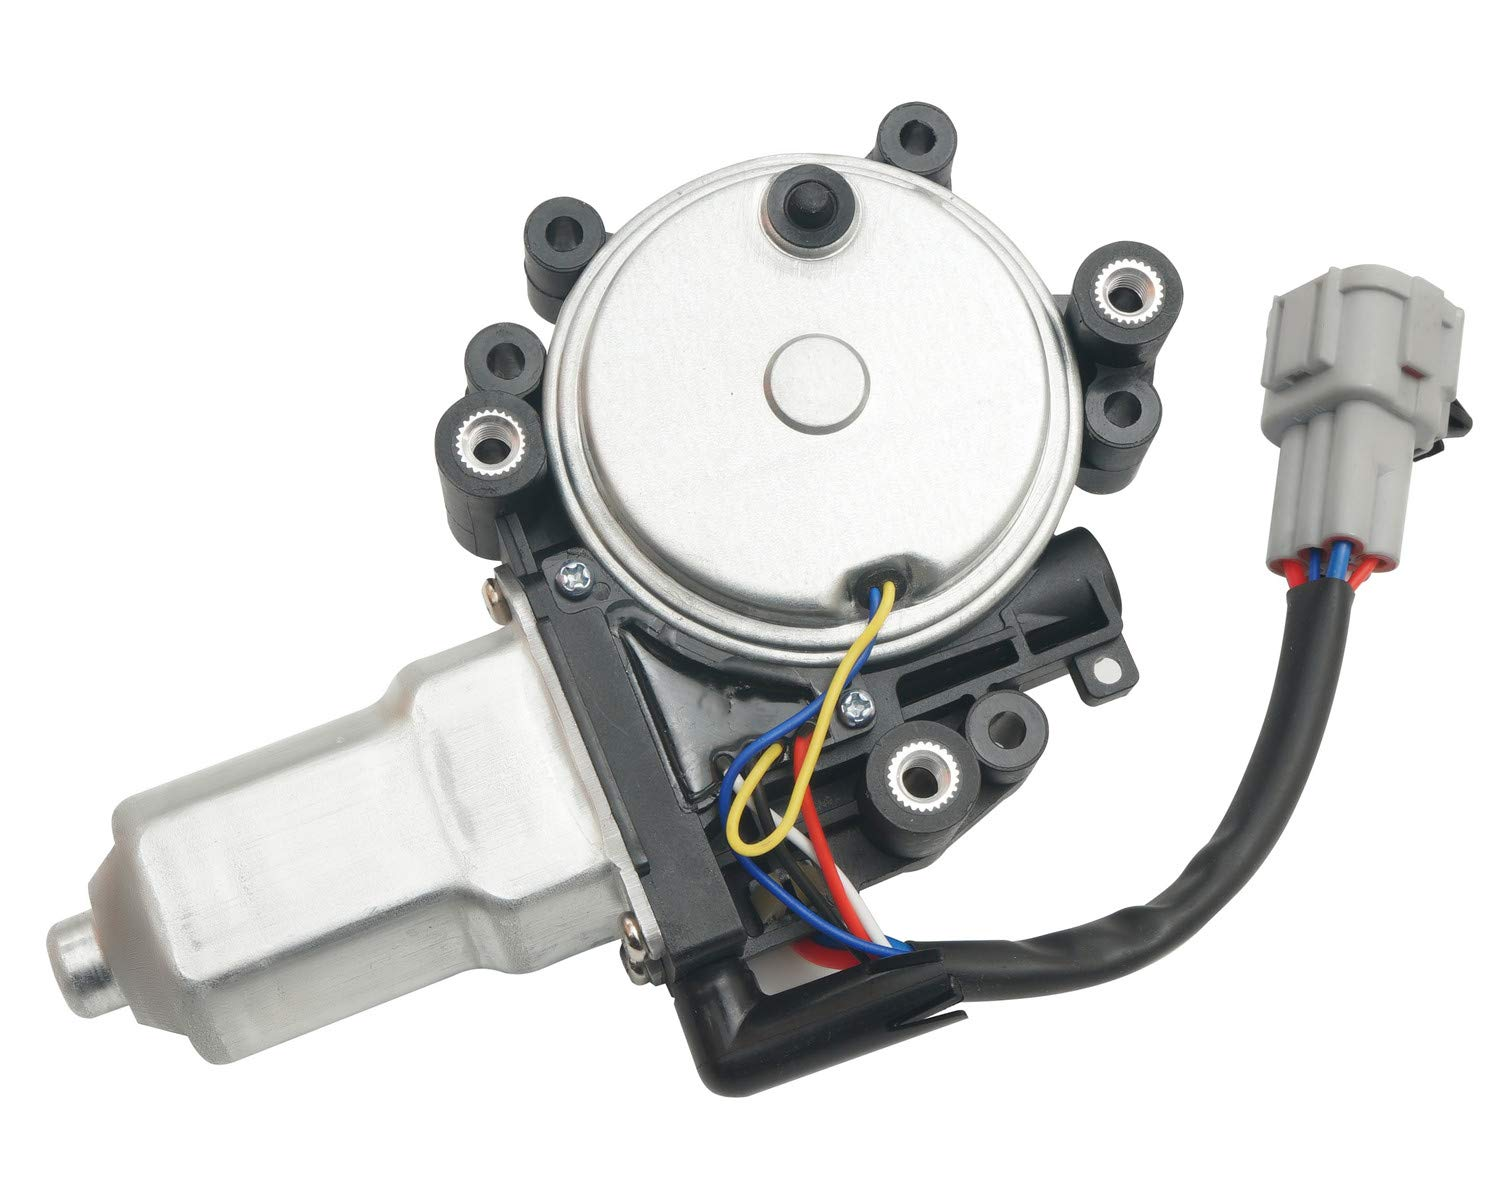 Power Window Lift Motor Front Left Driver Side 80731-9FJ0A for 2004-2014 Nissan Titan 2005-2014 Nissan Armada 2004 Nissan Pathfinder 2004-2011 Infiniti QX56 Replace # 80731-ZT01A